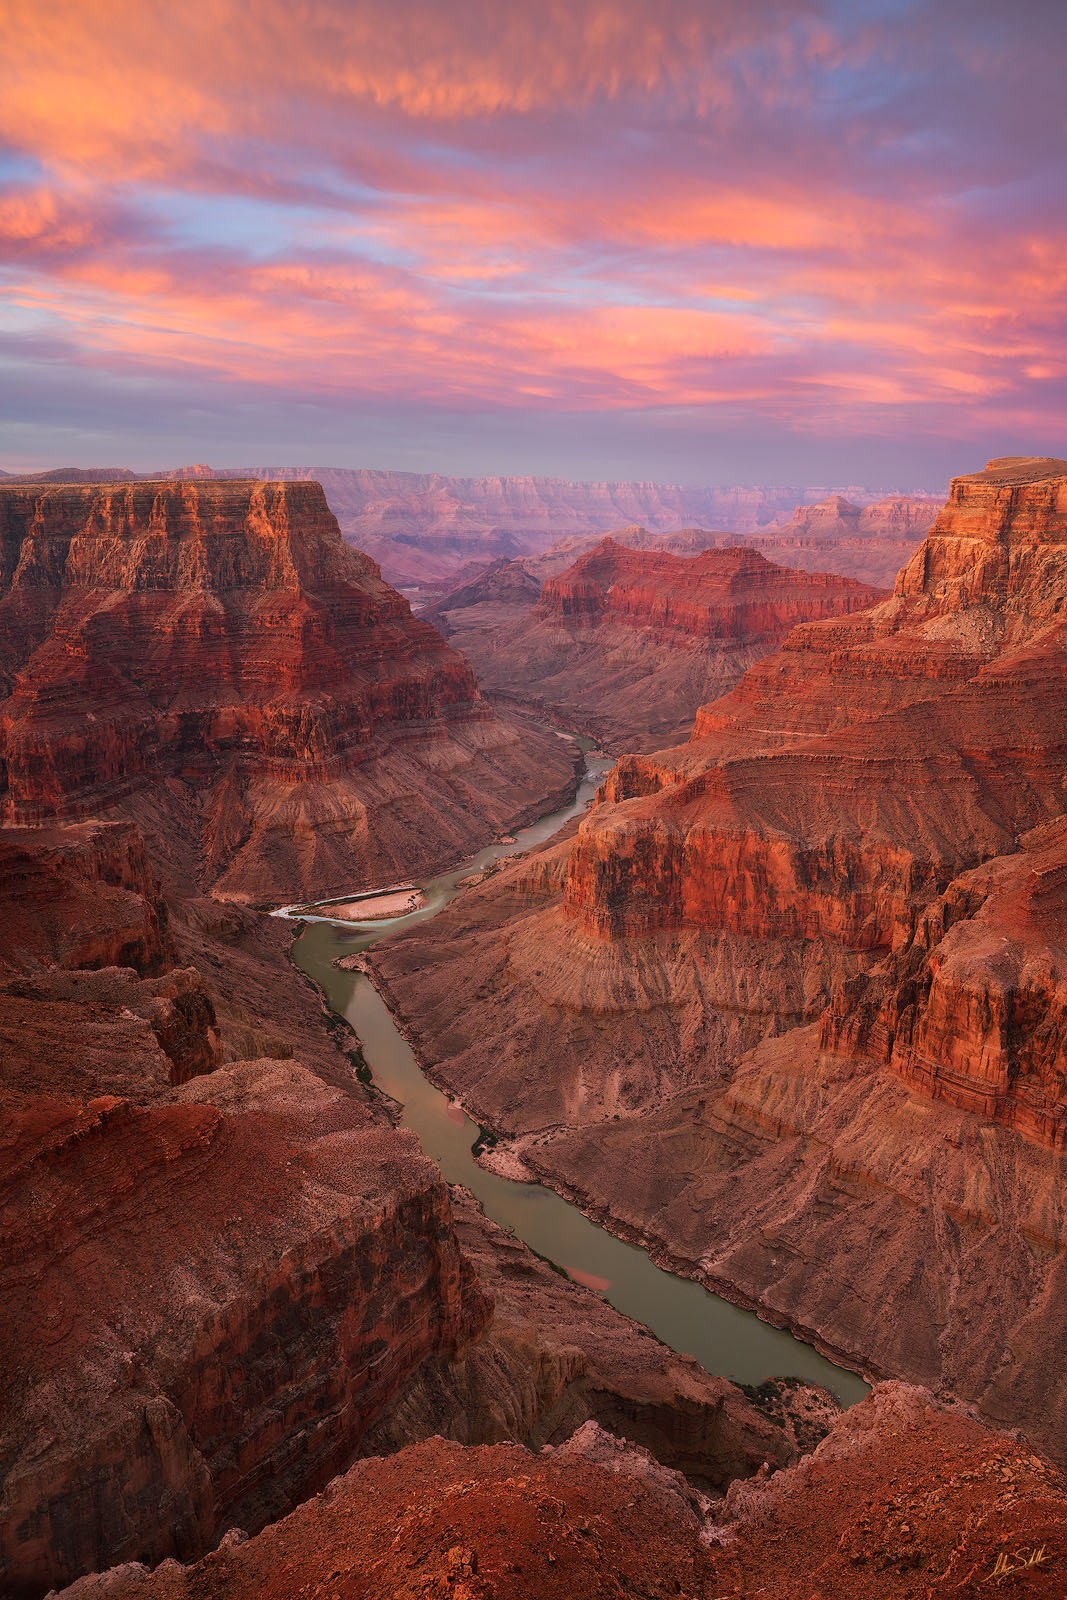 AZ, Arizona, Colorado River, Desert, East Rim, Grand Canyon, LCR, Little Colorado River, Marble Canyon, Navajo, Navajo Nation, photo